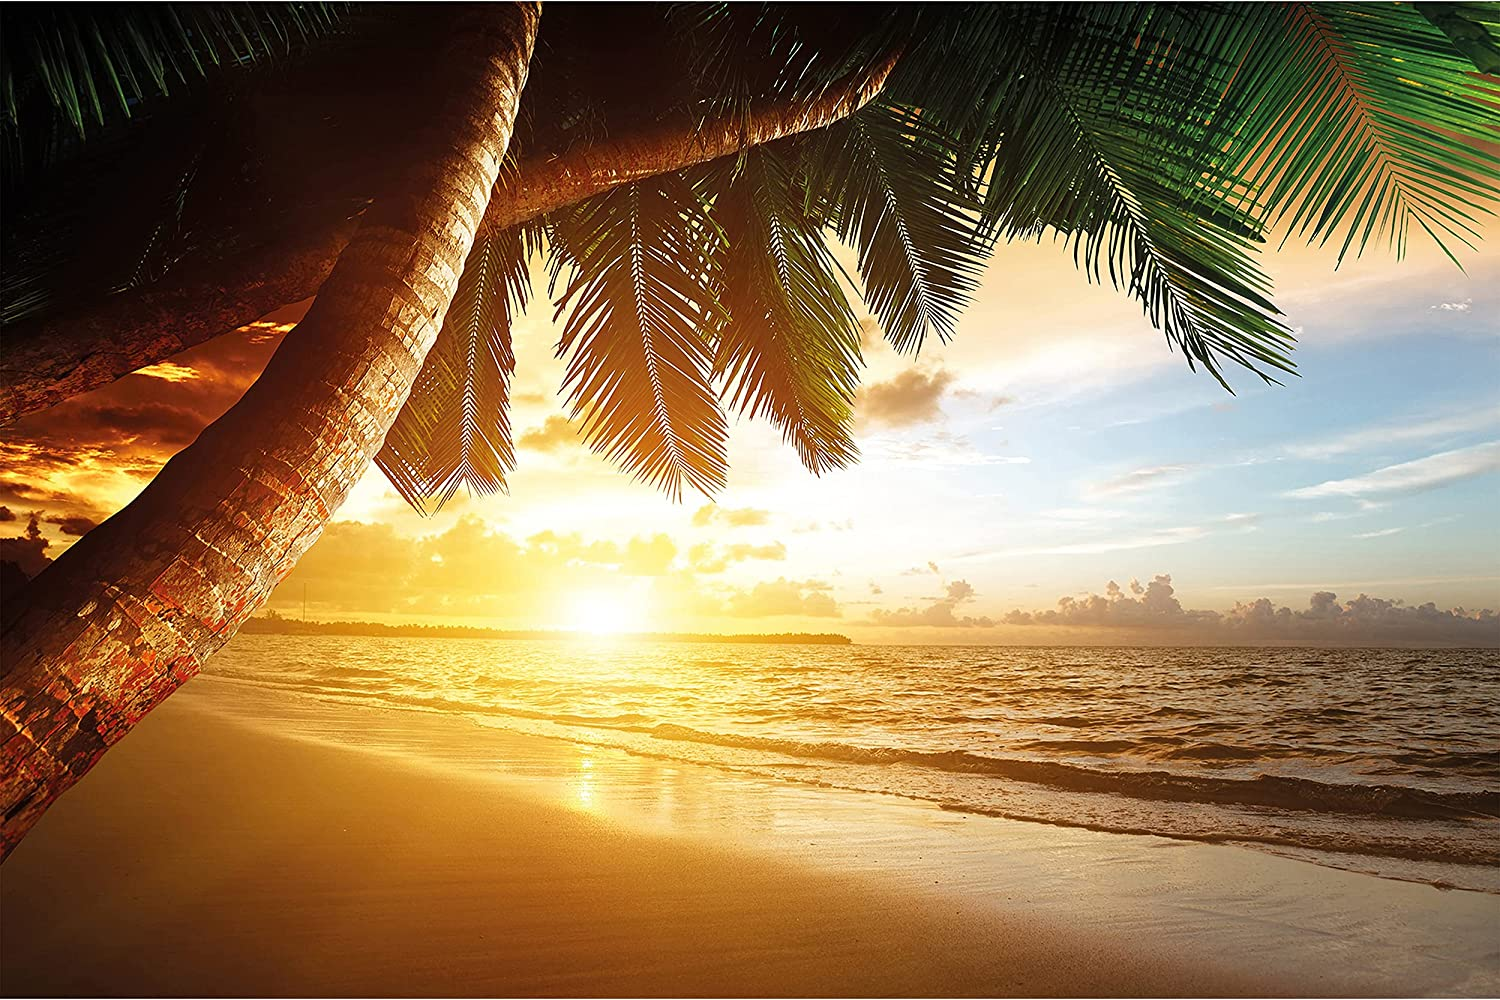 Large Photo Wallpaper – Beach Sunset – Picture Decoration Caribbean Ocean Summer Vacation Dusk Paradise Dream Island Travel Image Decor Wall Mural (132.3x93.7in - 336x238cm)